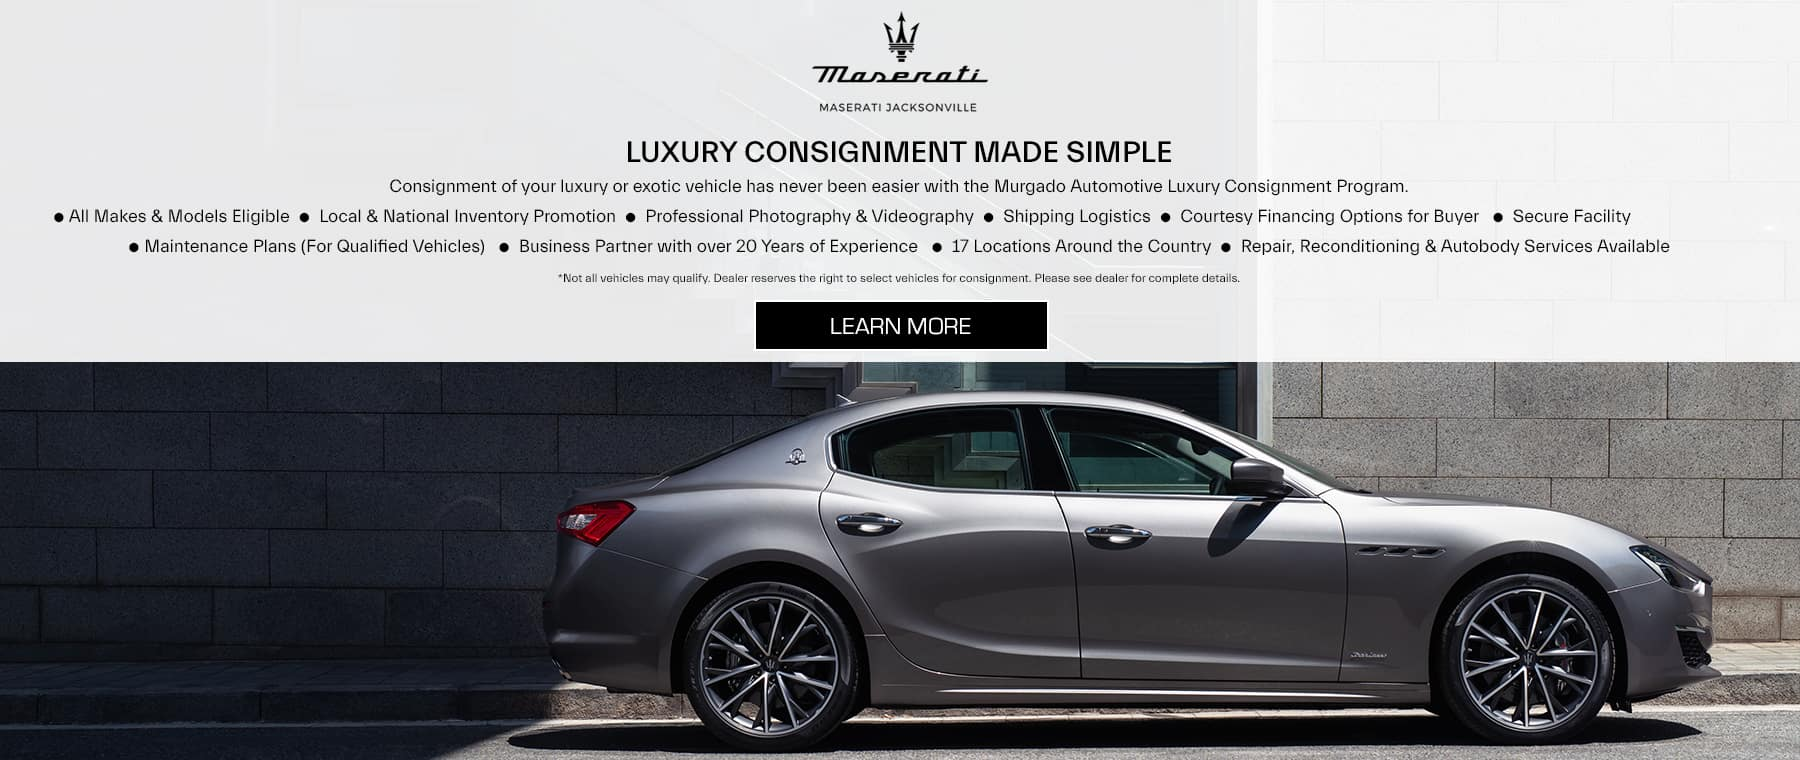 Maserati of Central New Jersey luxury consignment